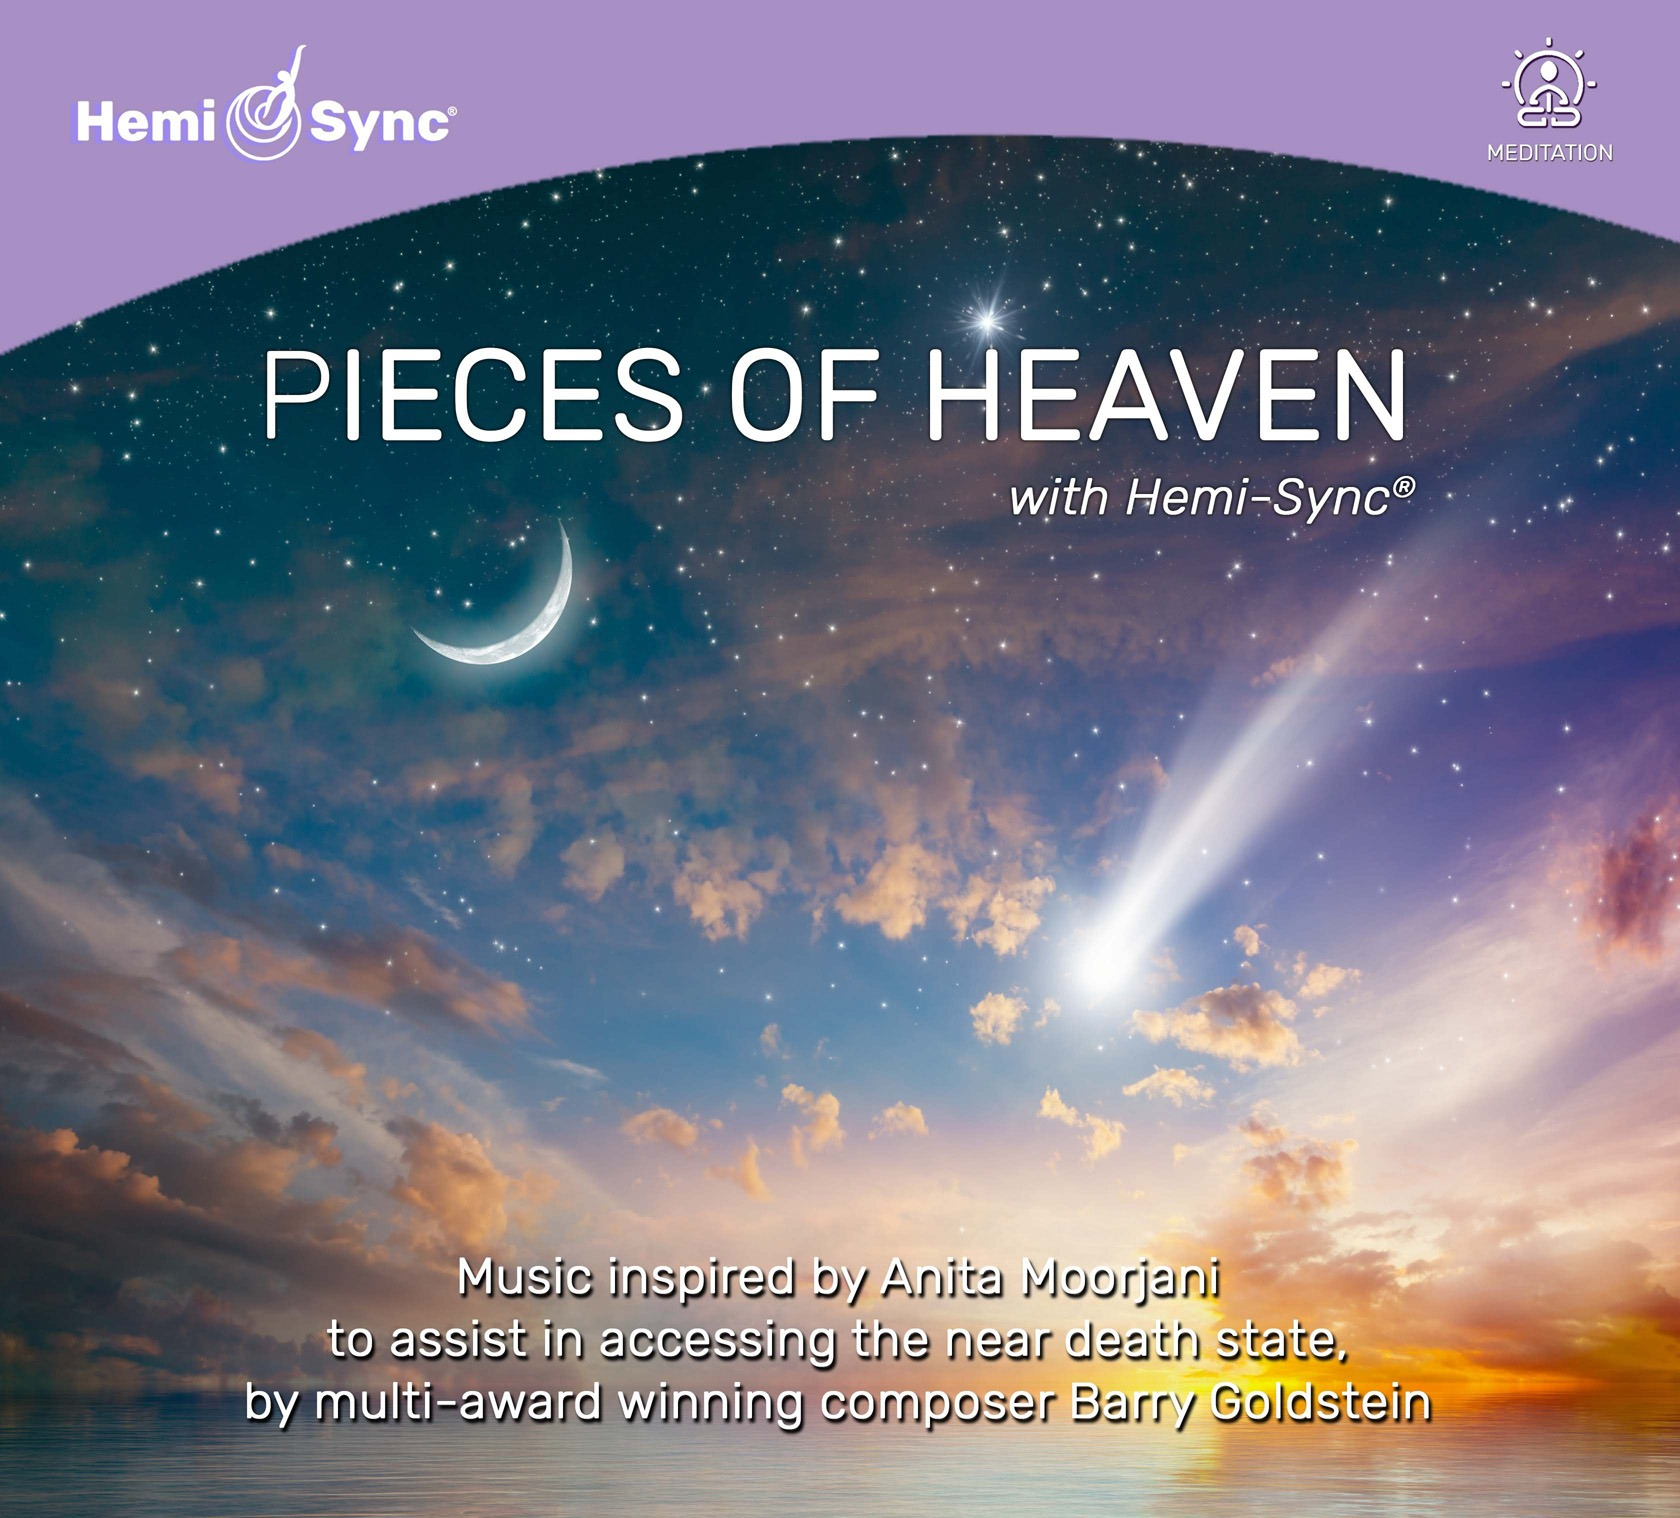 Pieces of Heaven with Hemi-Sync